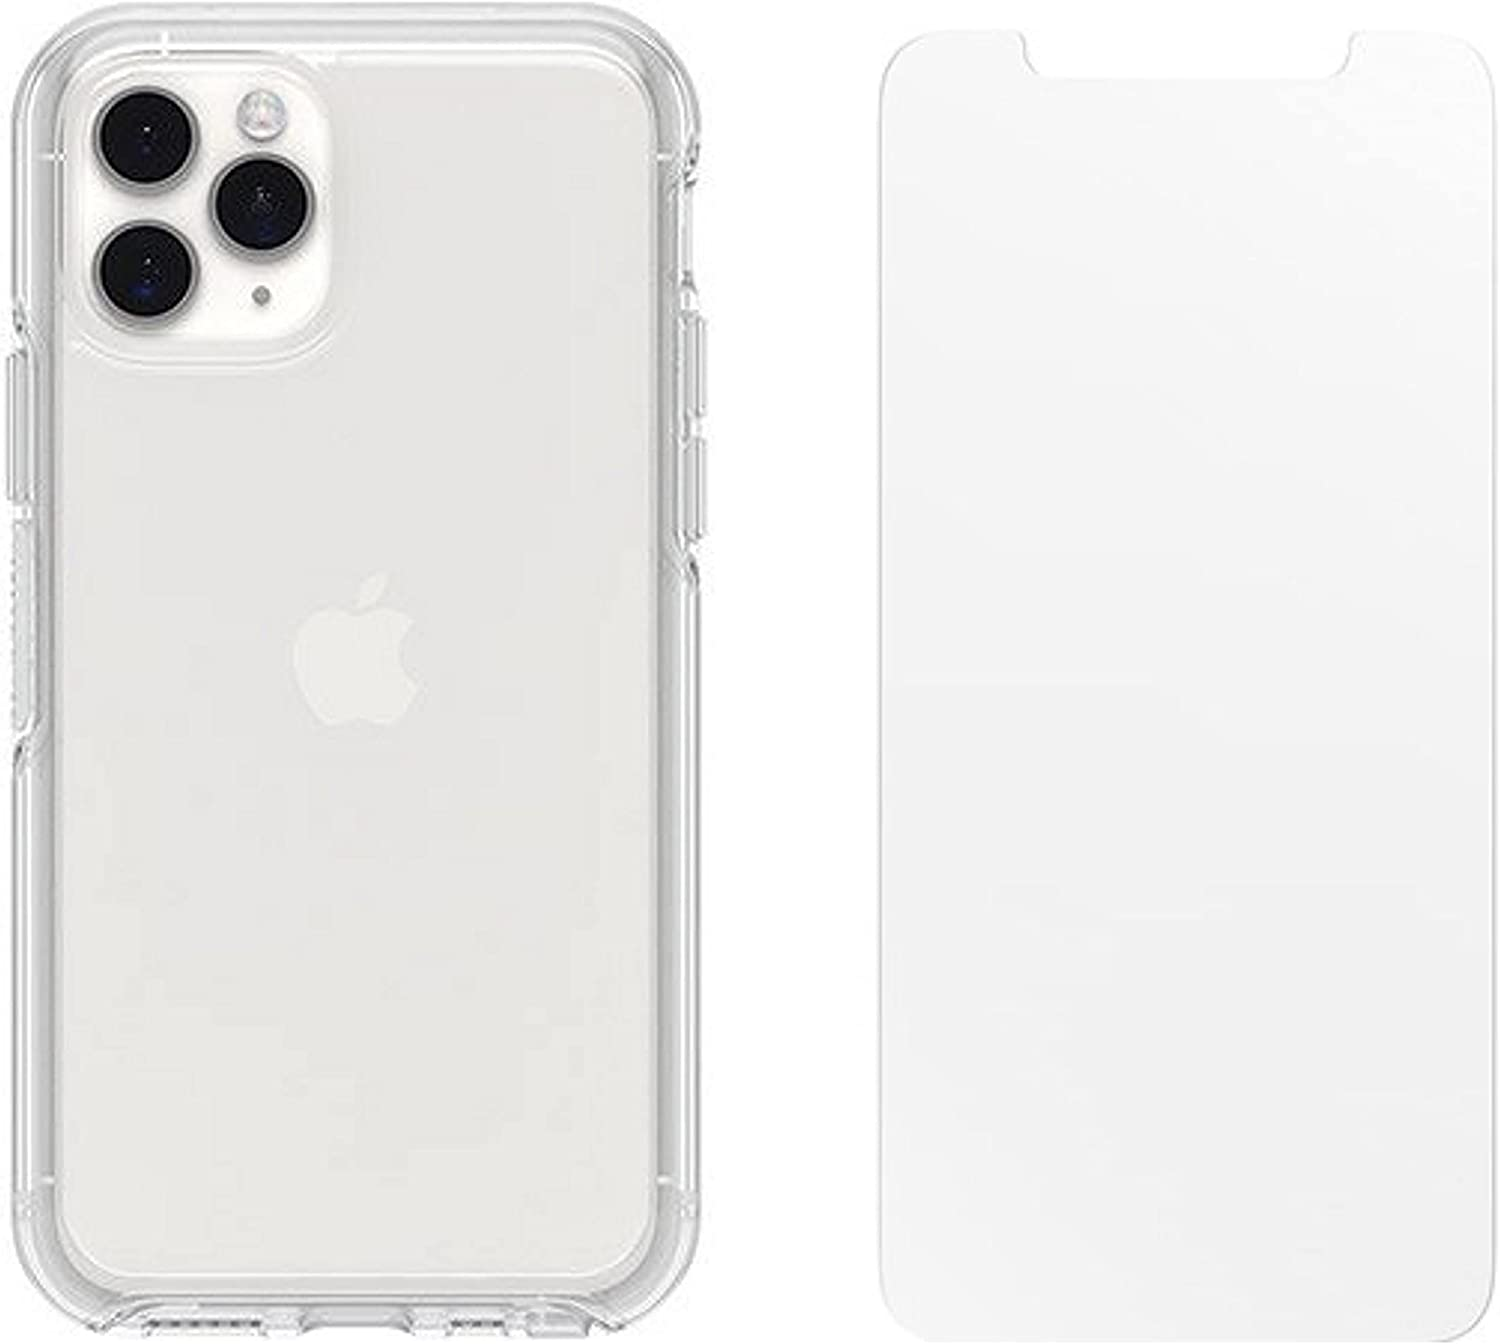 OtterBox Symmetry Clear Series Case San Francisco Mall Pro Max 73% OFF 11 for X iPhone